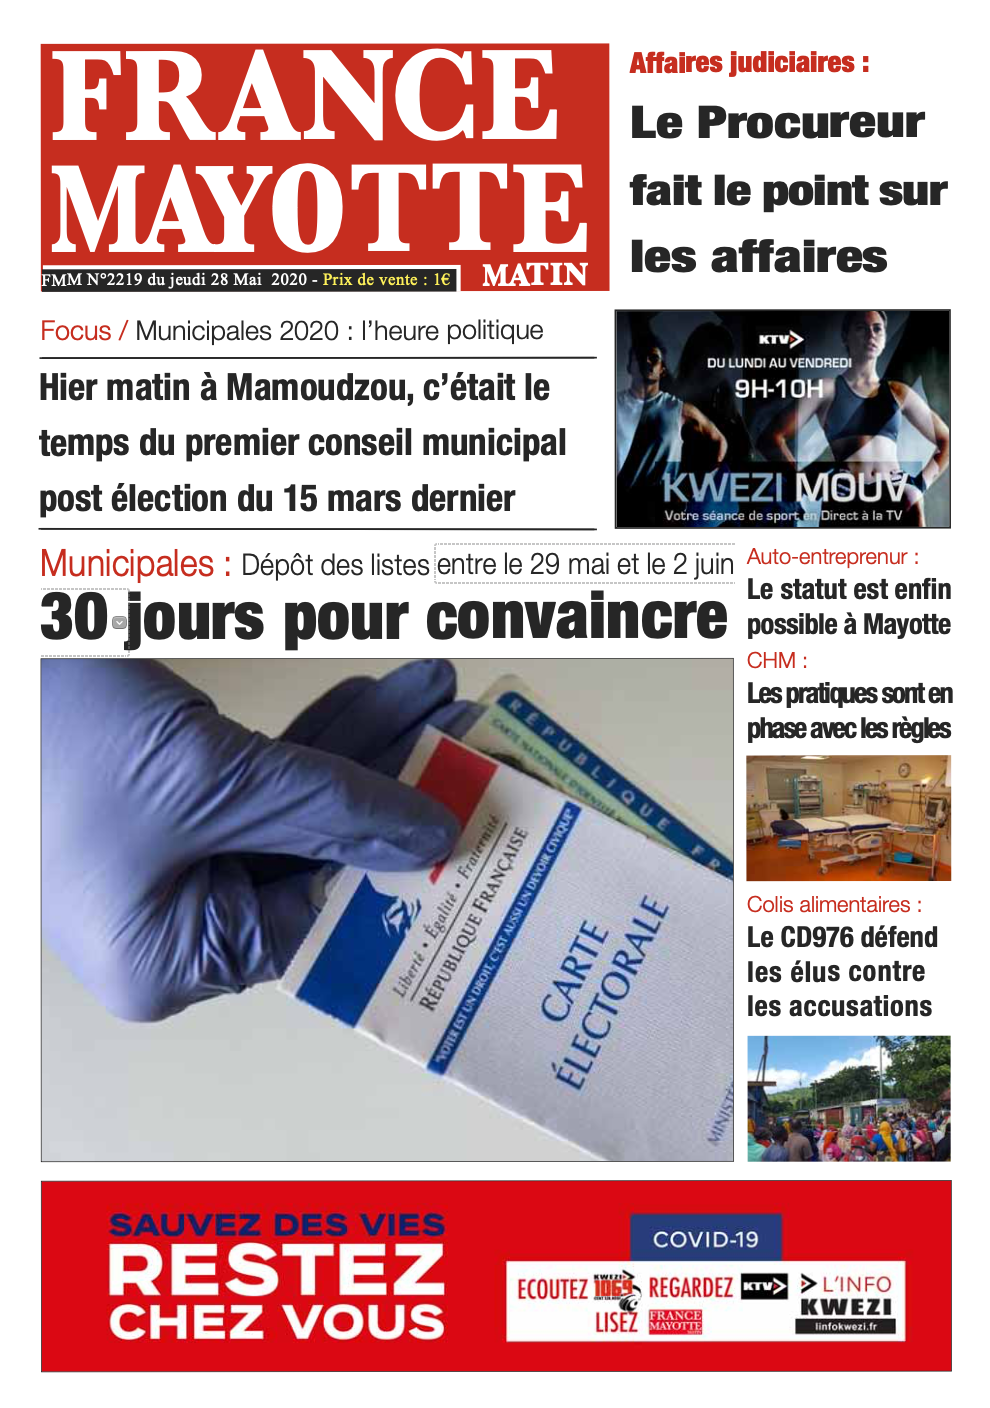 France Mayotte Jeudi 28 mai 2020